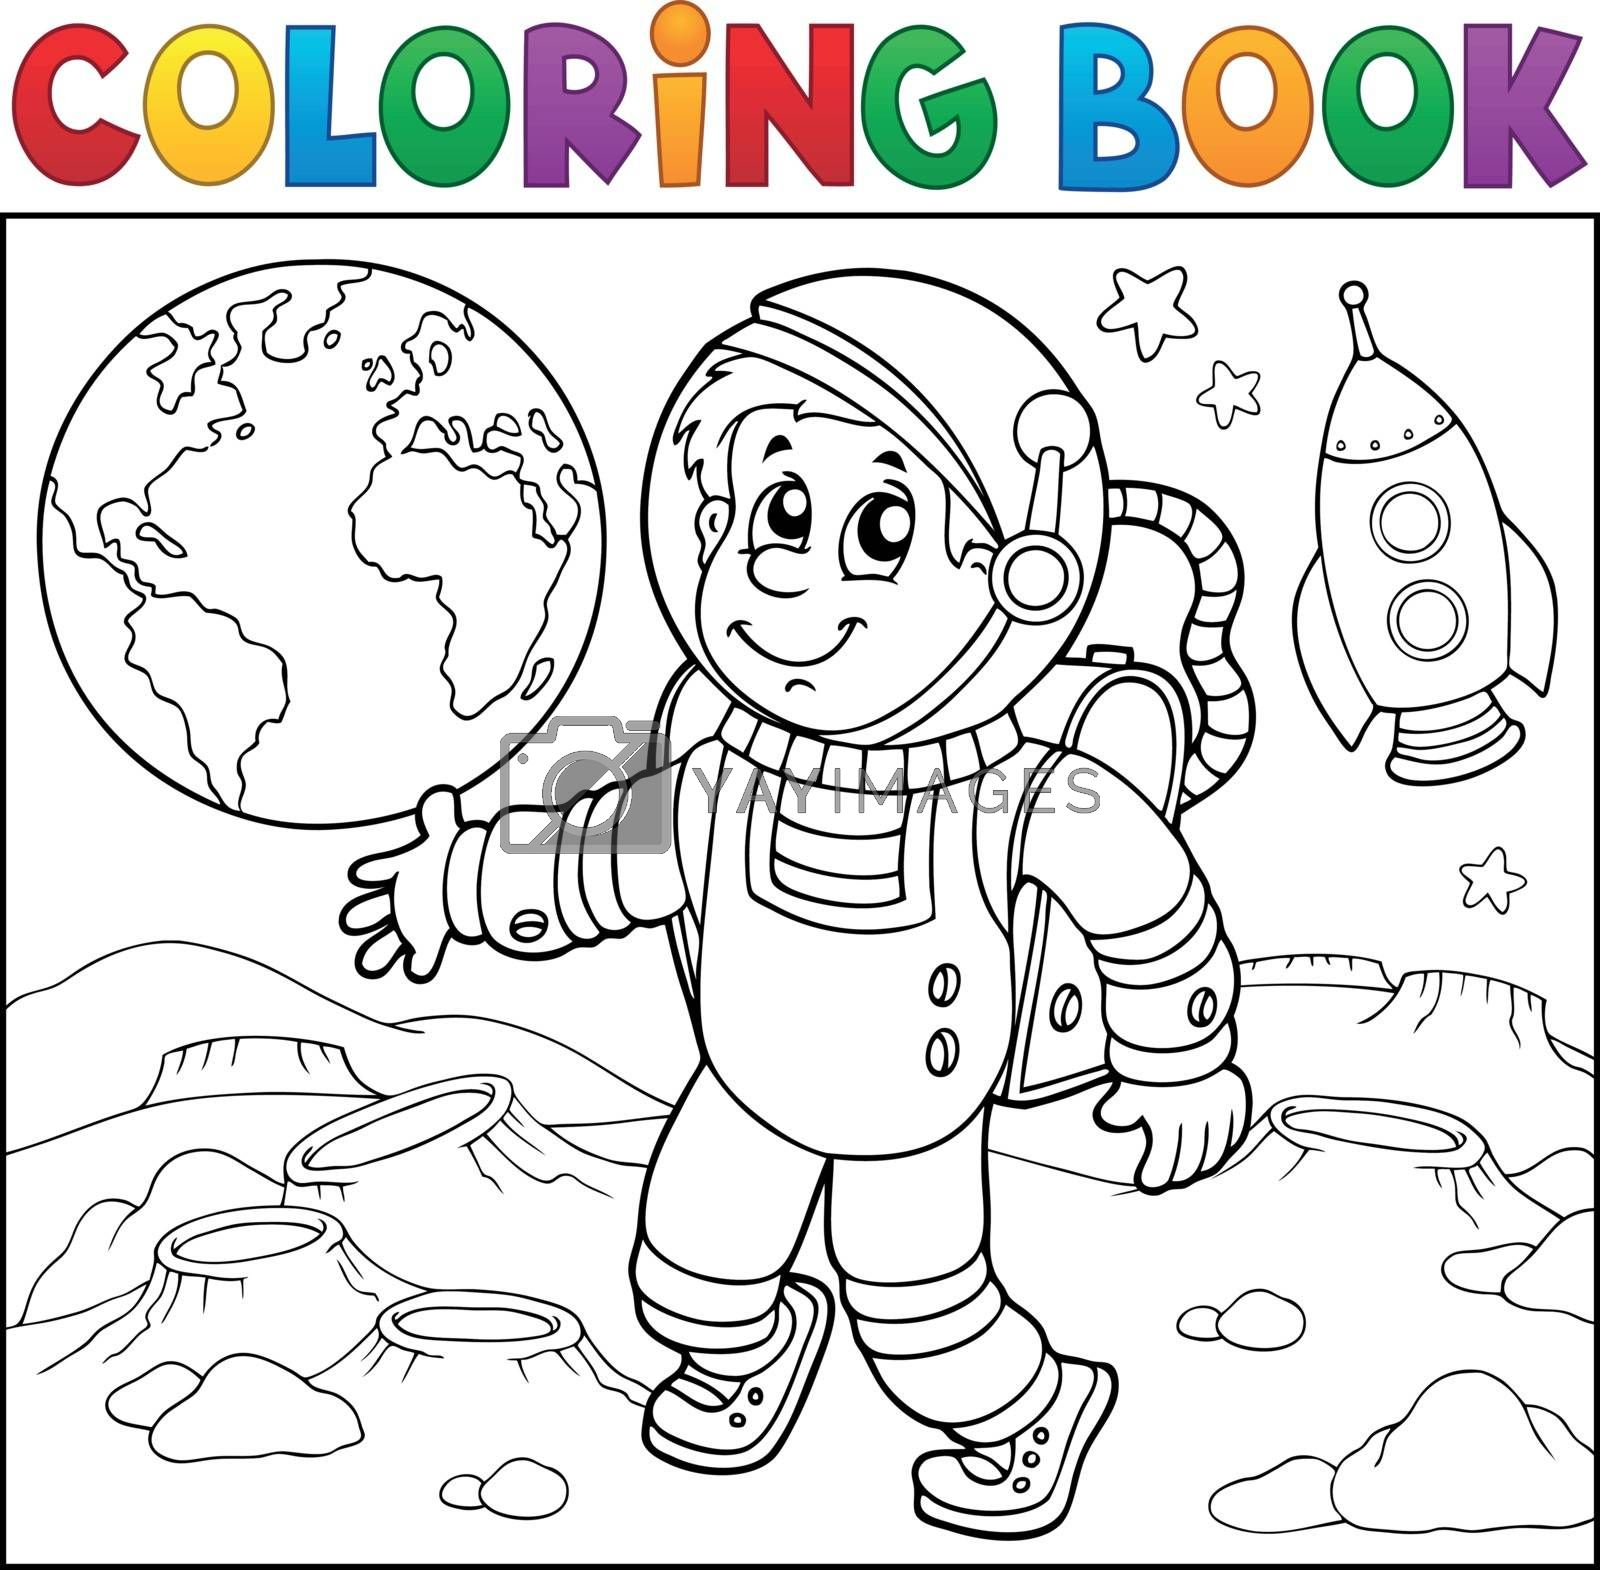 Coloring book astronaut theme 2 - eps10 vector illustration.